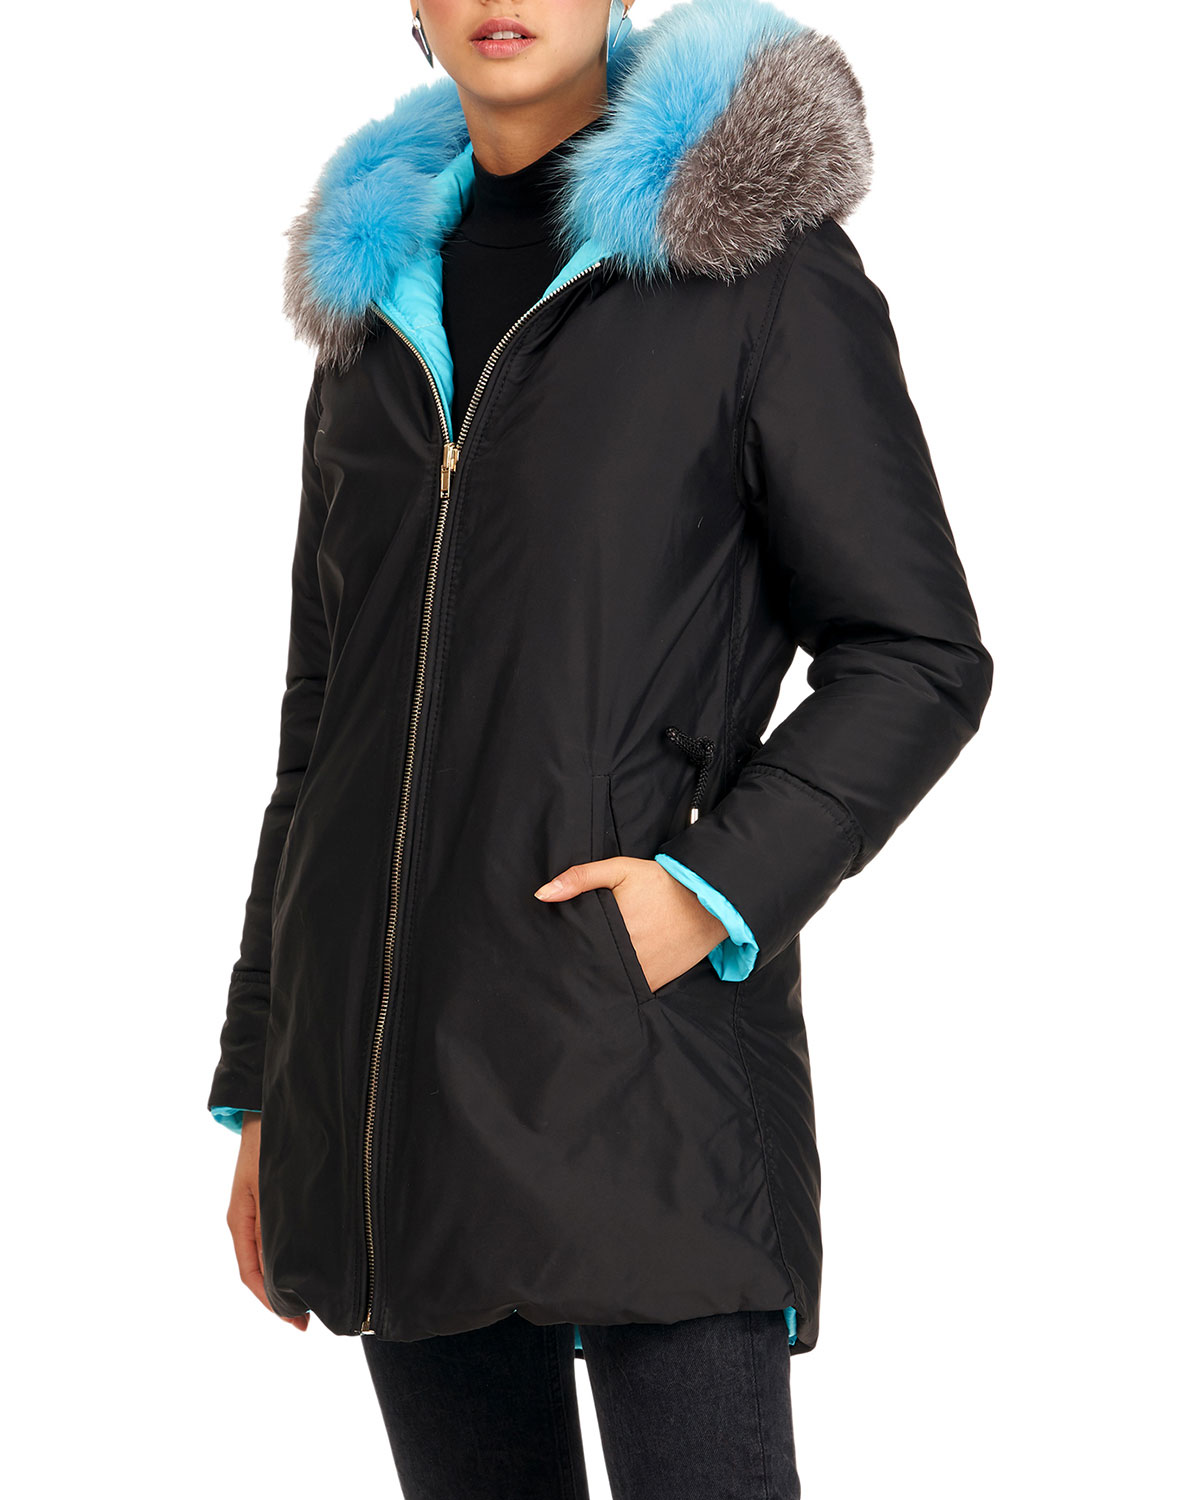 Gorski Reversible Quilted Puffer Apres-Ski Parka Jacket W/ Detachable Fox Fur Hood Trim